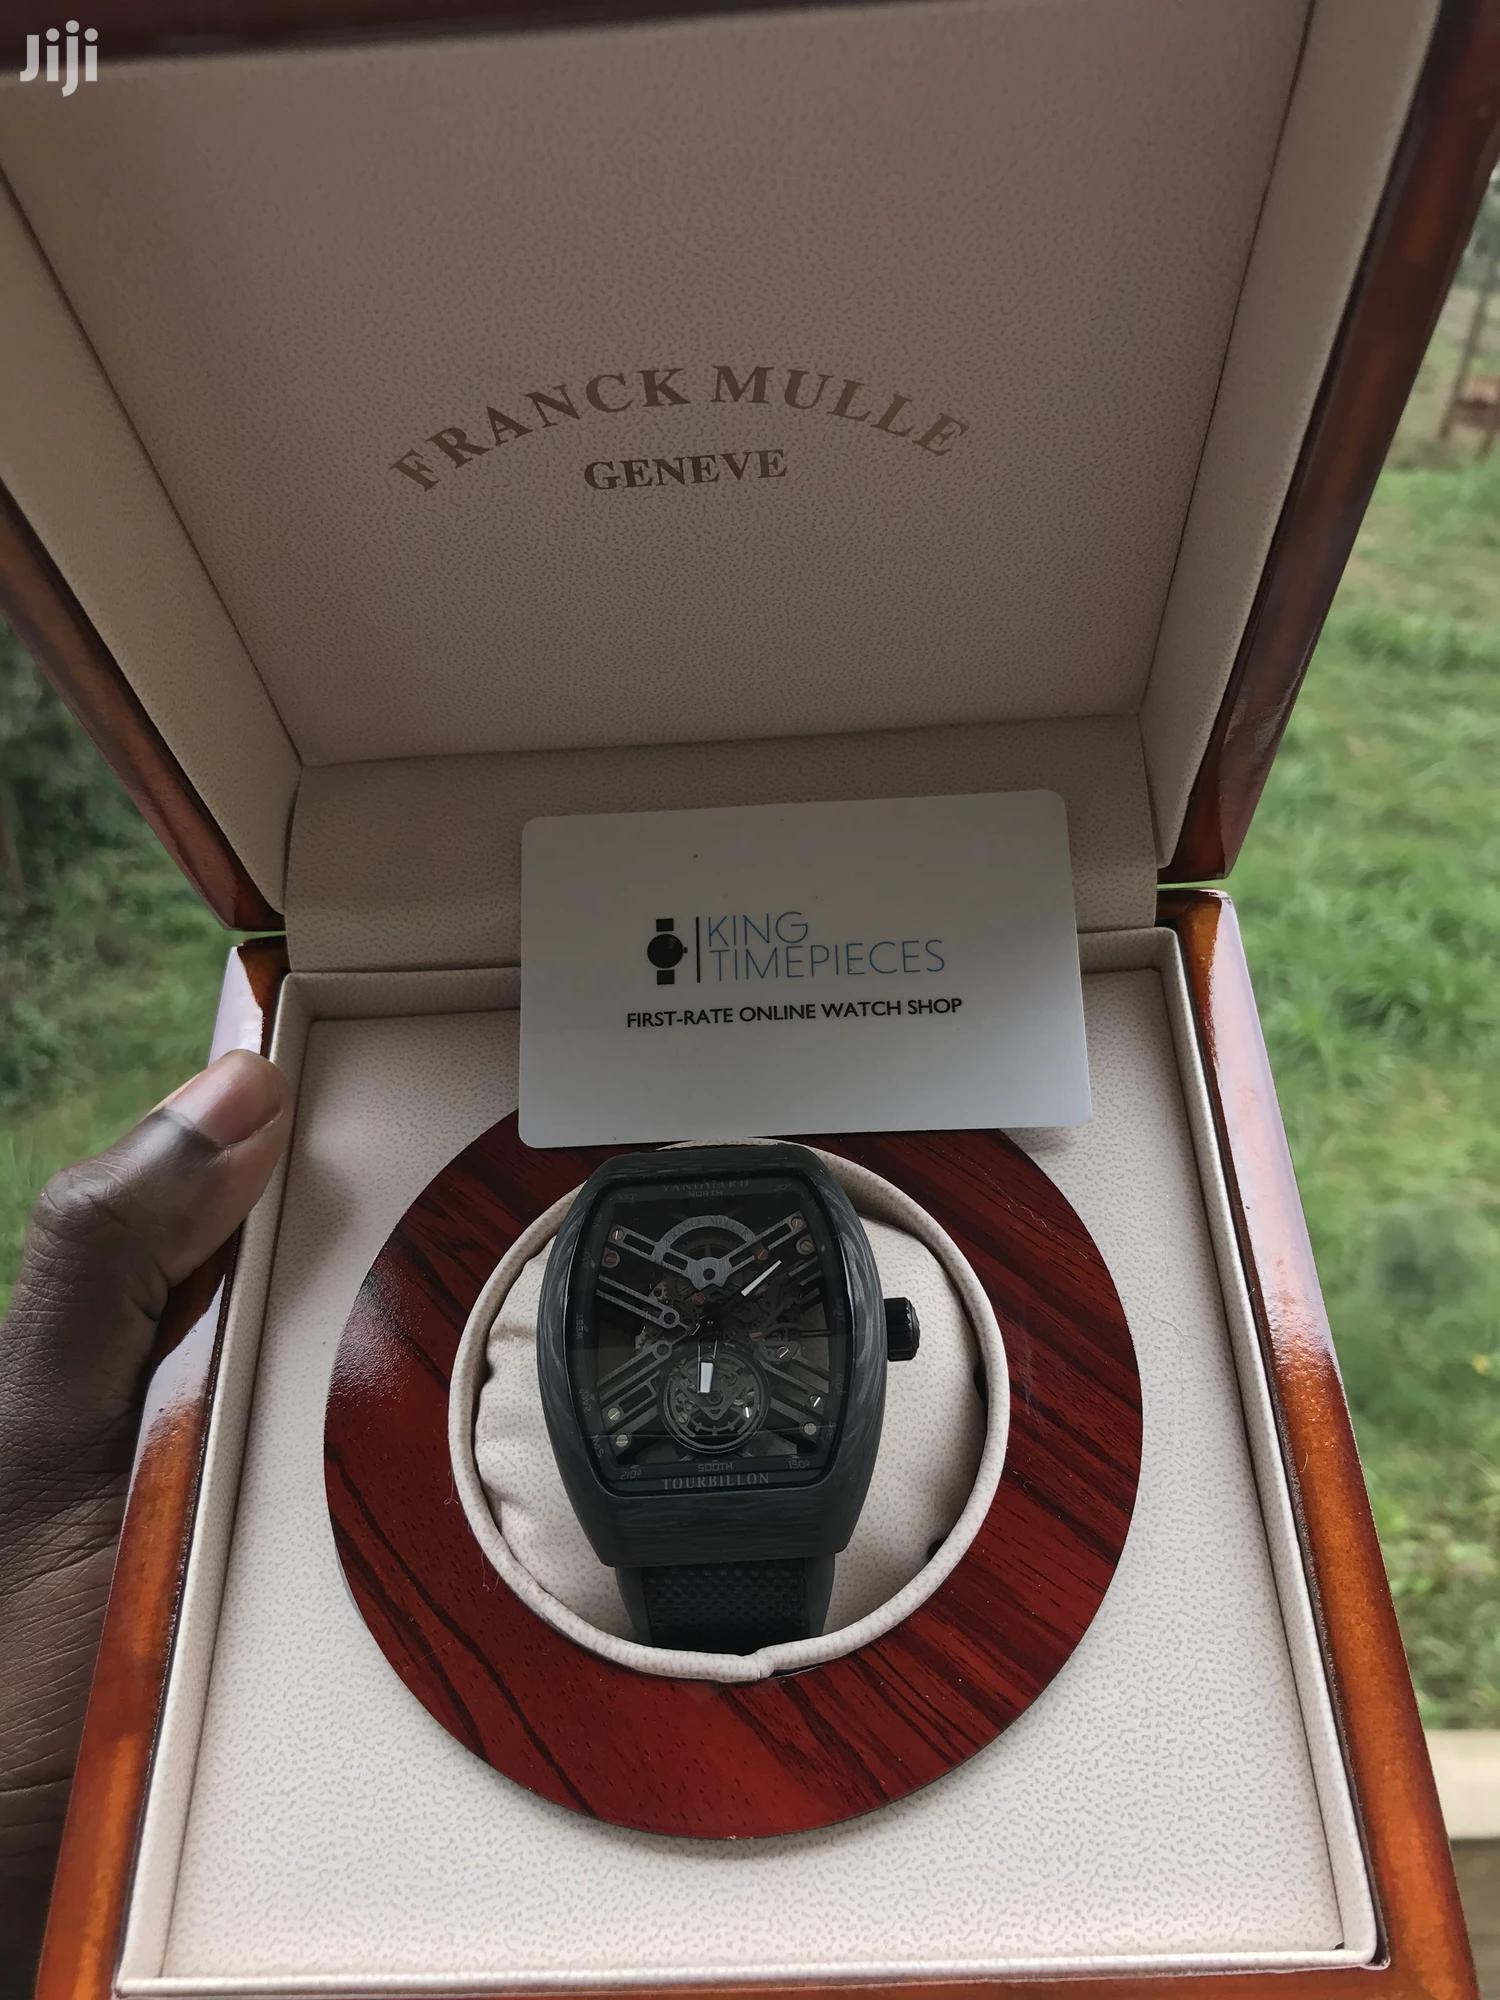 FRANK MULLER Carbon Fibre Watch Available on Preorder | Watches for sale in Kileleshwa, Nairobi, Kenya